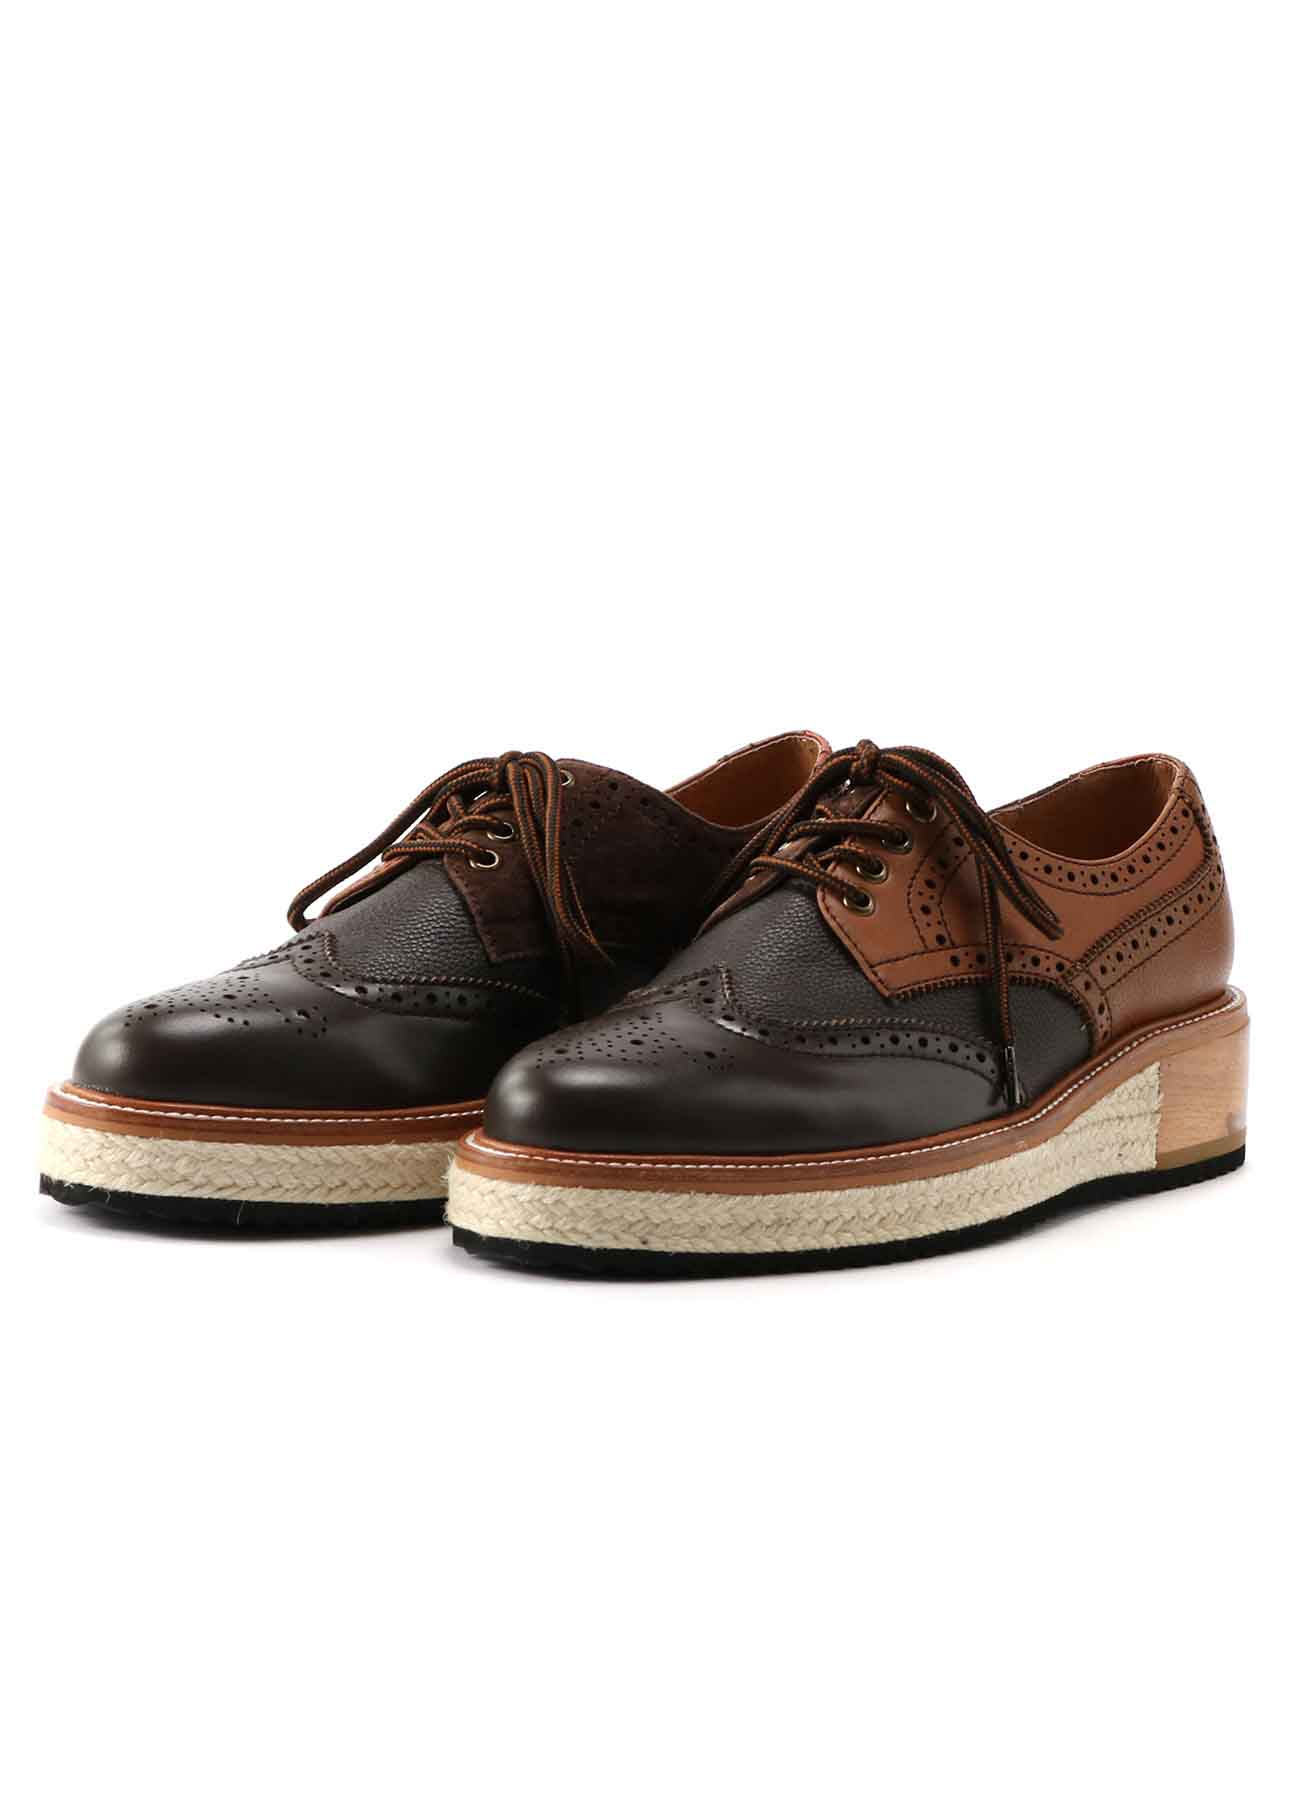 KAYONAKAMURAbyY's COMBI MULTI MATERIAL LEATHER DECO HOLE LOW SHOES